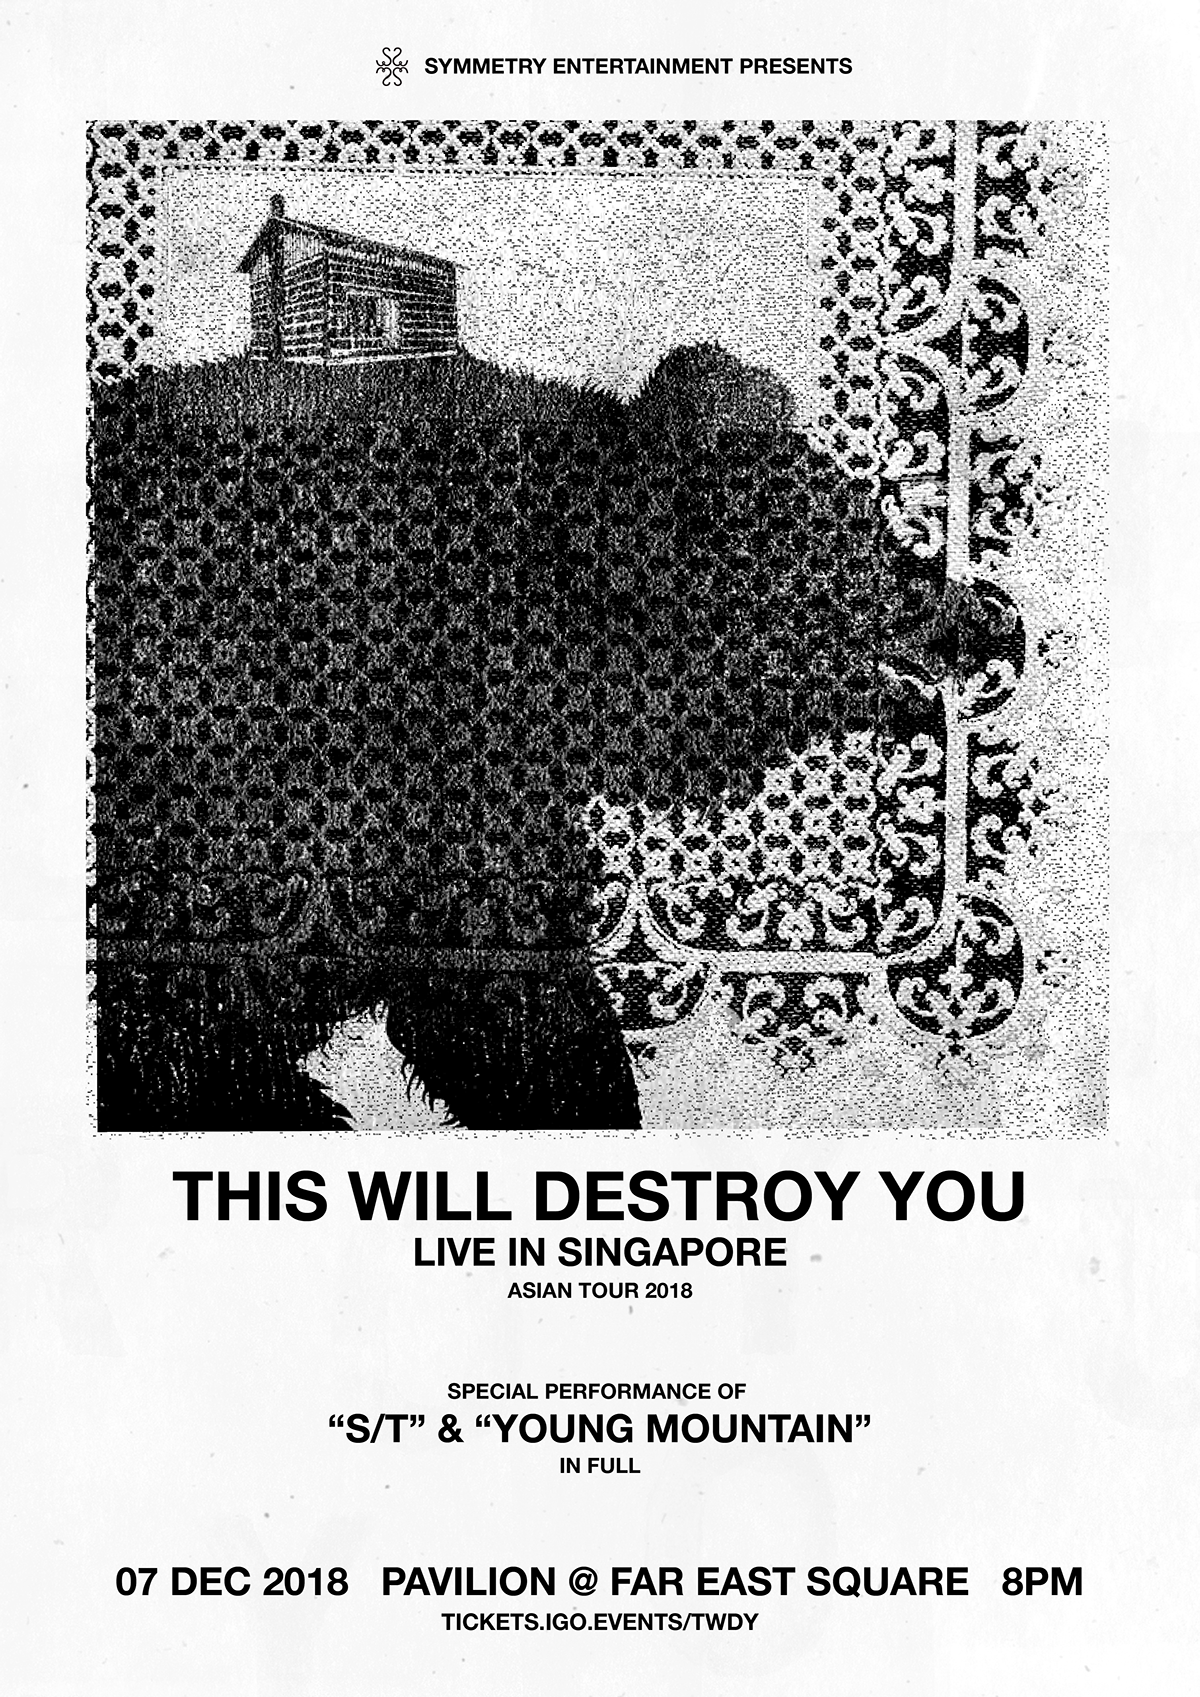 TWDY  This Will Destroy you music Symmetry Entertainment gig poster singapore graphic design  art direction  Creative Direction